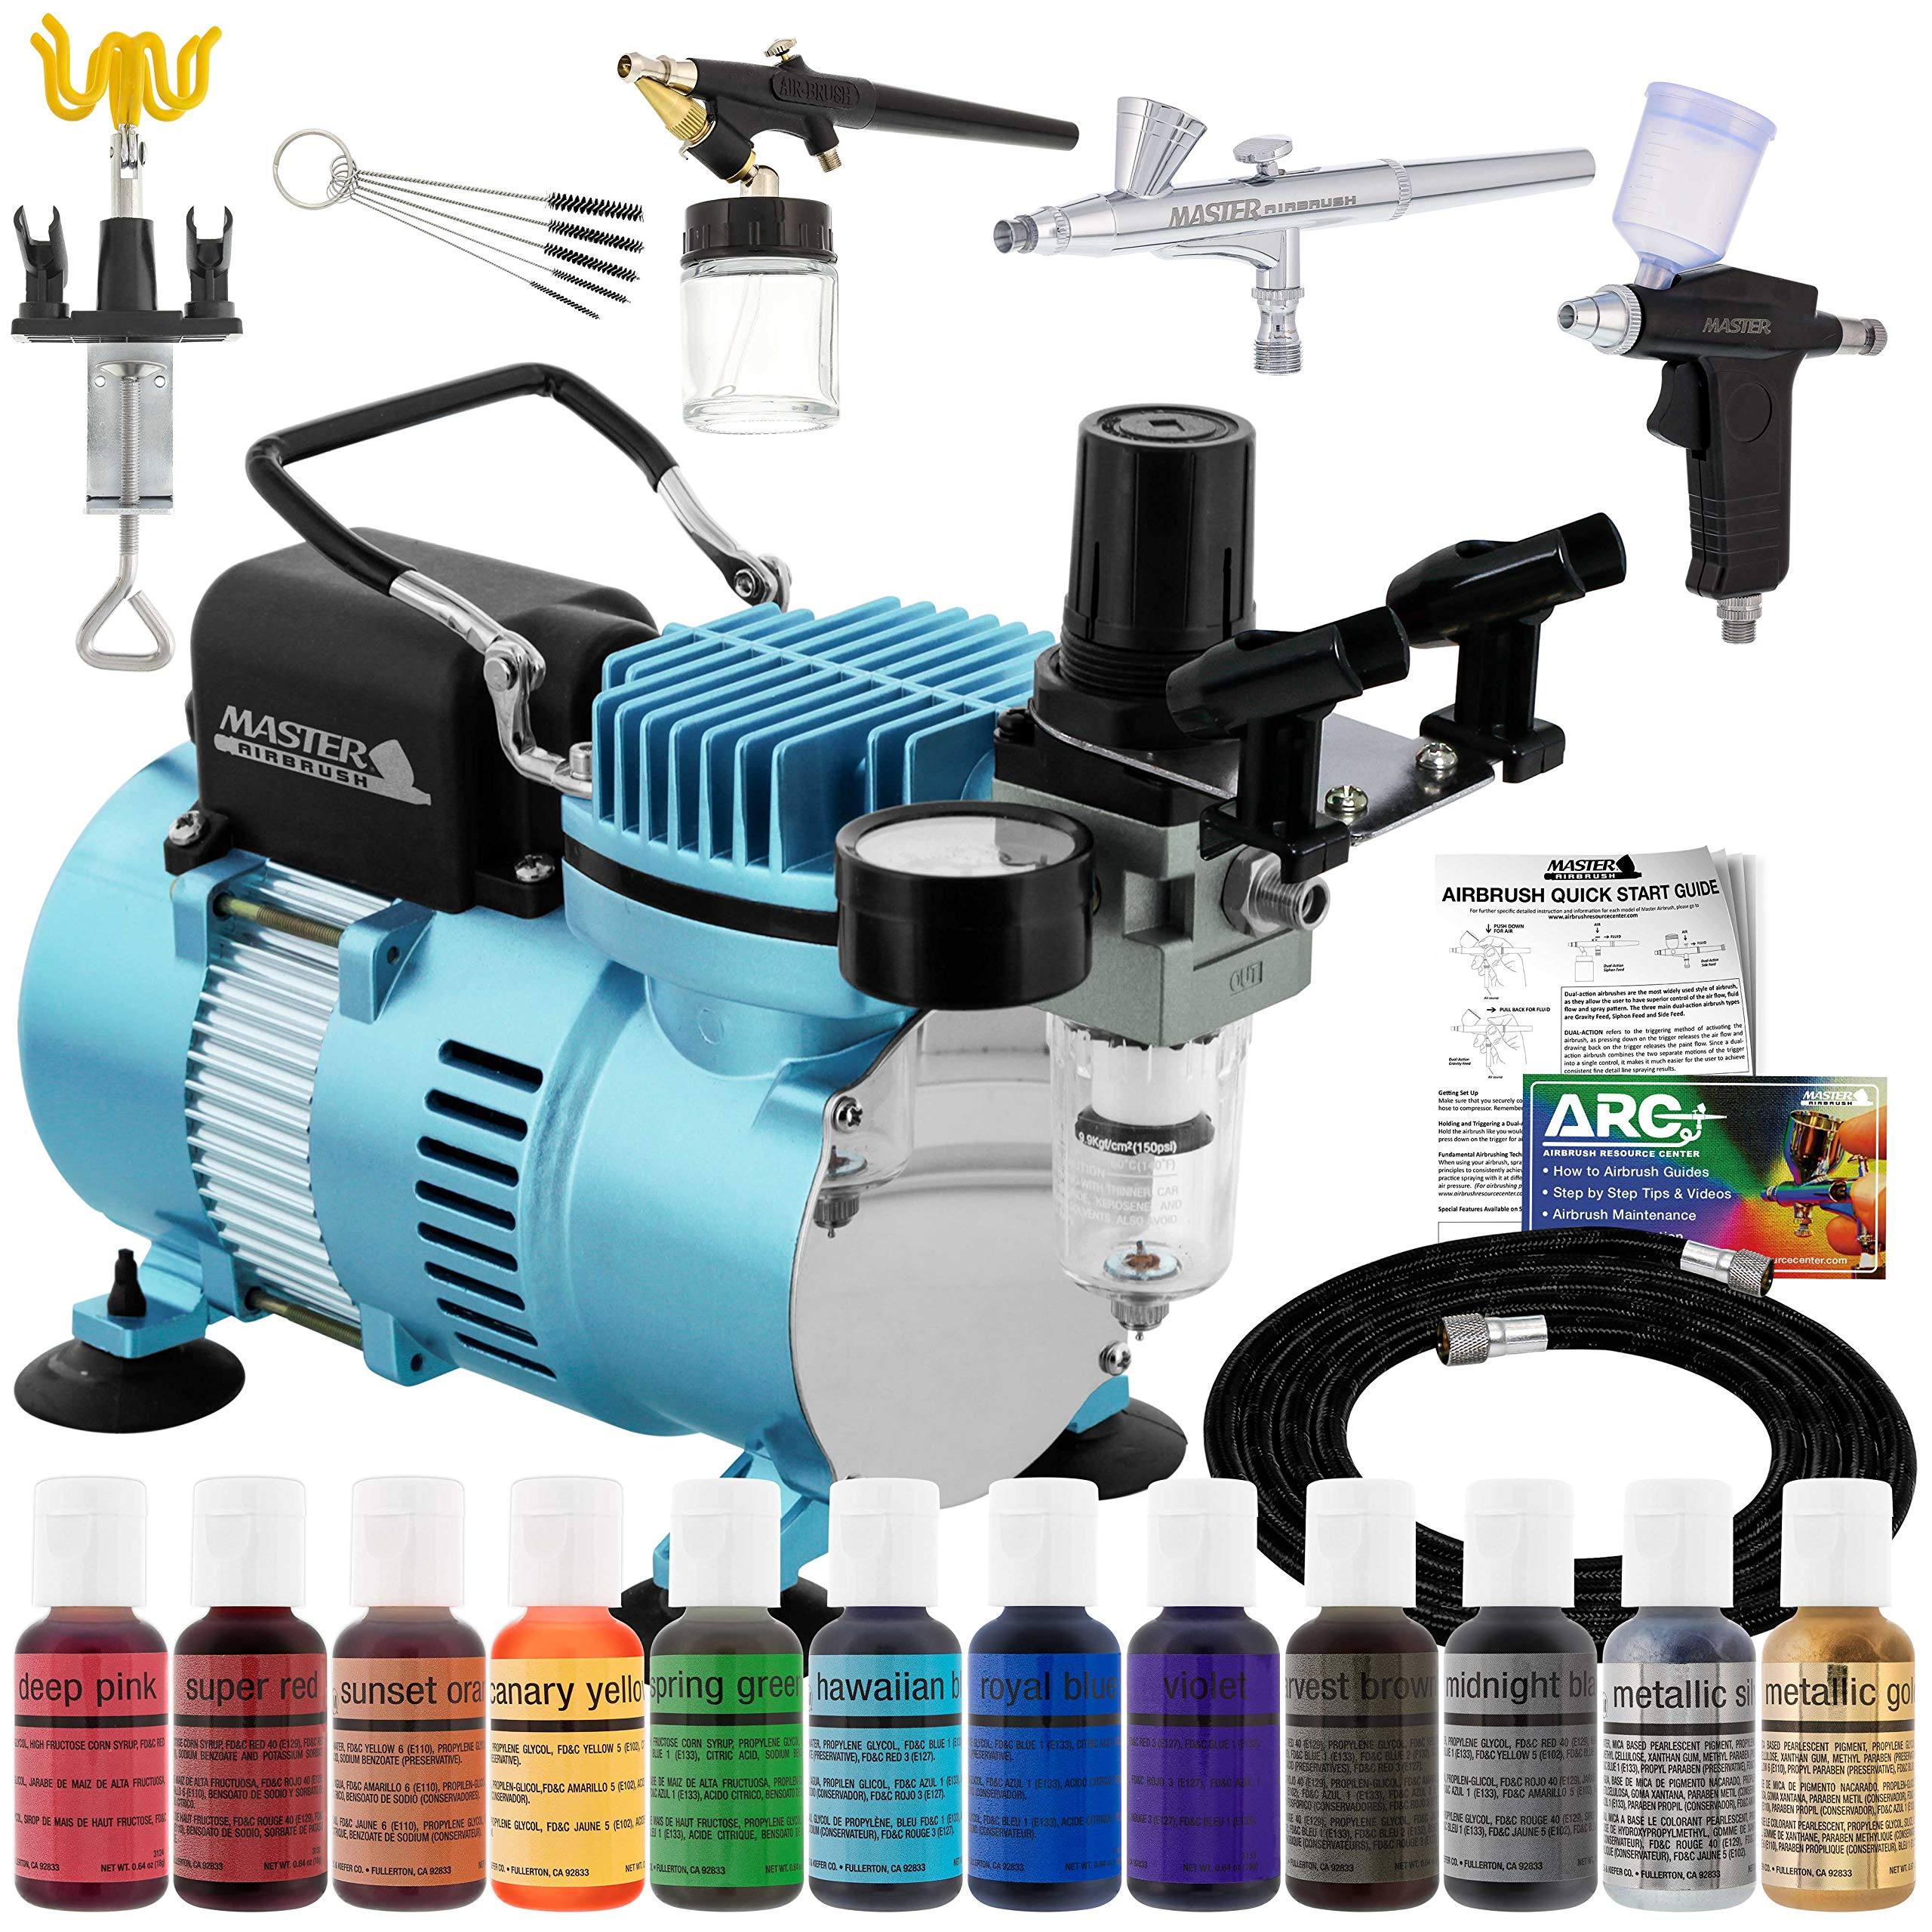 Master Airbrush Cool Runner II Dual Fan Air Compressor Pro Cake Decorating System Kit with 3 Airbrushes, Gravity and Siphon Feed, 12 Color Chefmaster Food Coloring Set - How-To Guide, Cupcake, Cookie